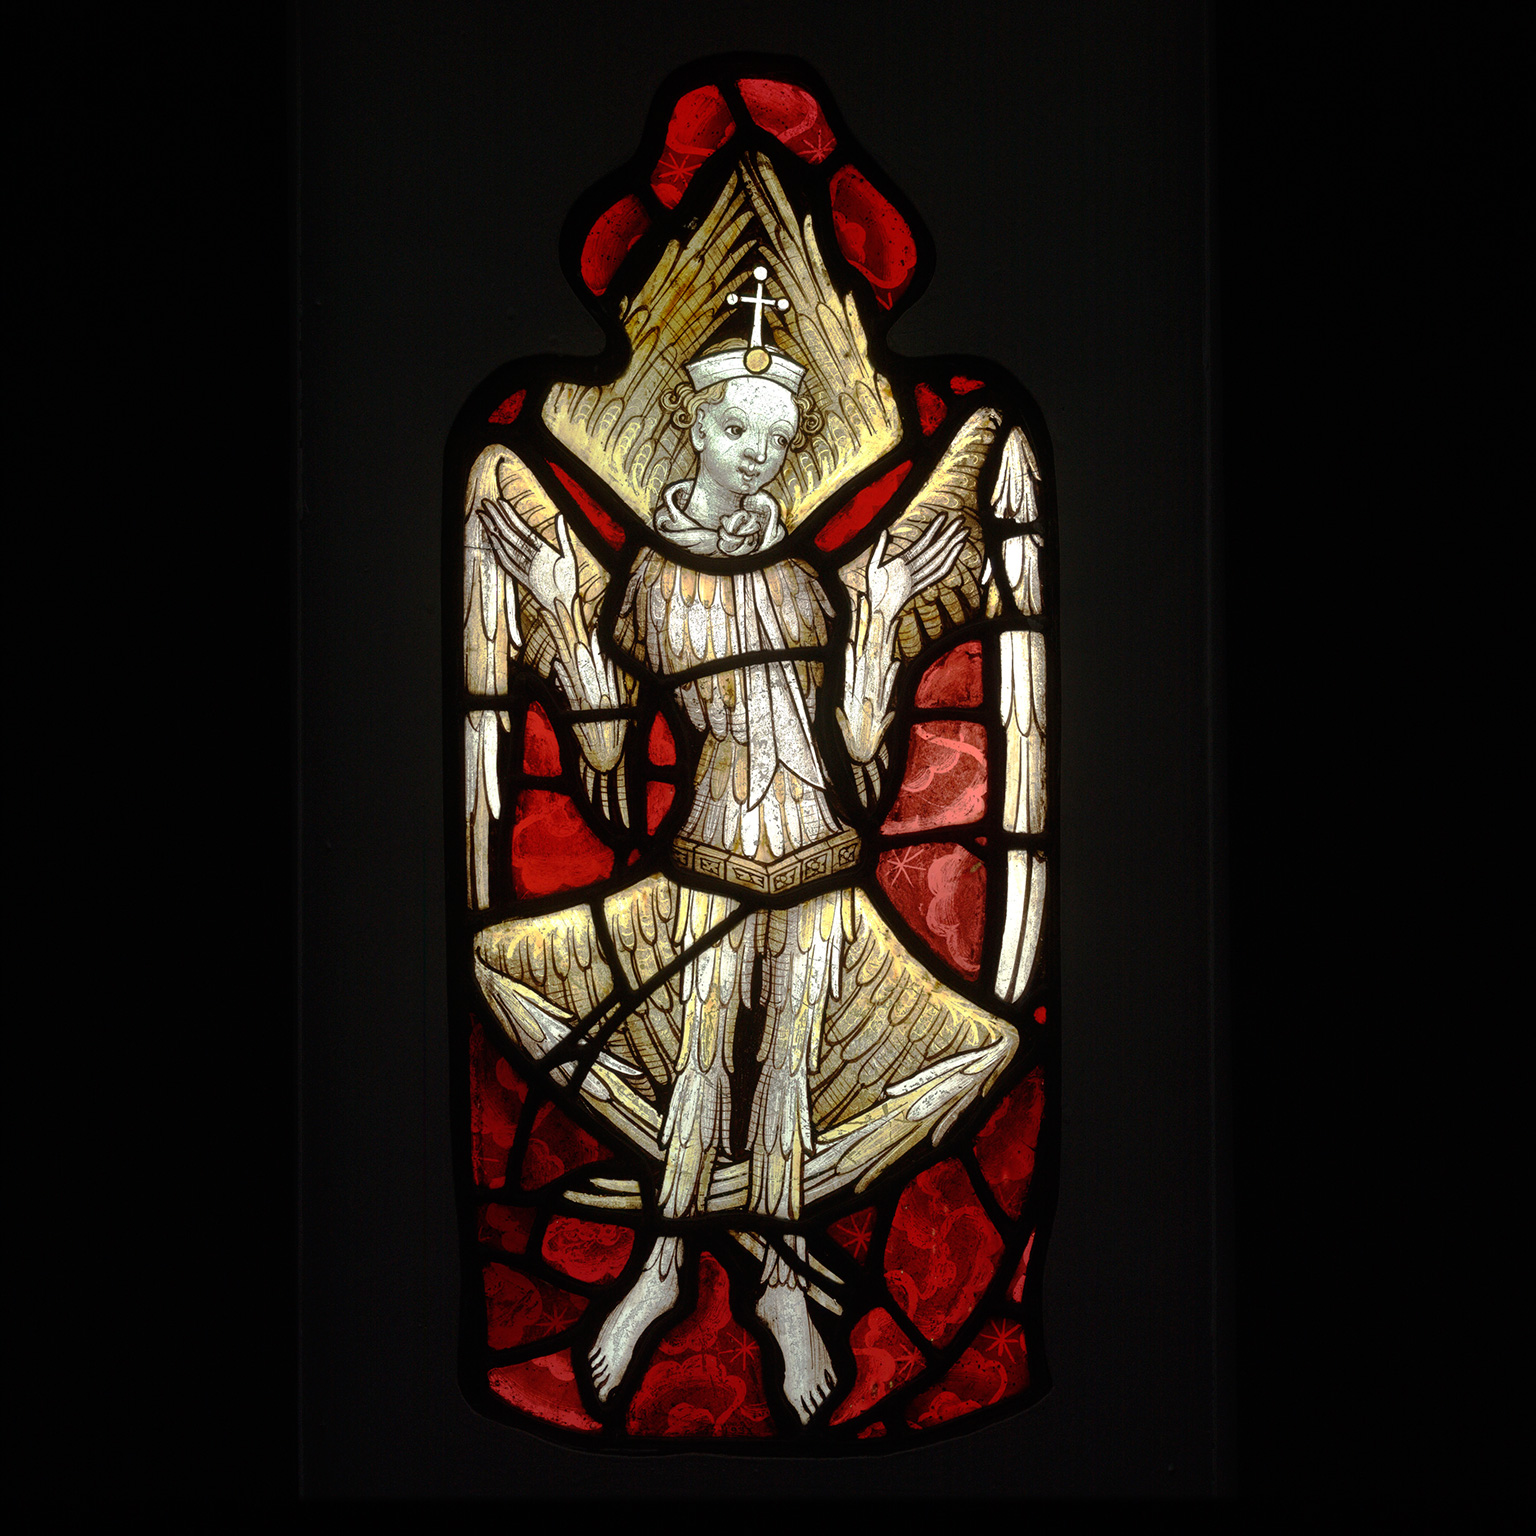 Витраж с серафимом (Stained glass seraph)